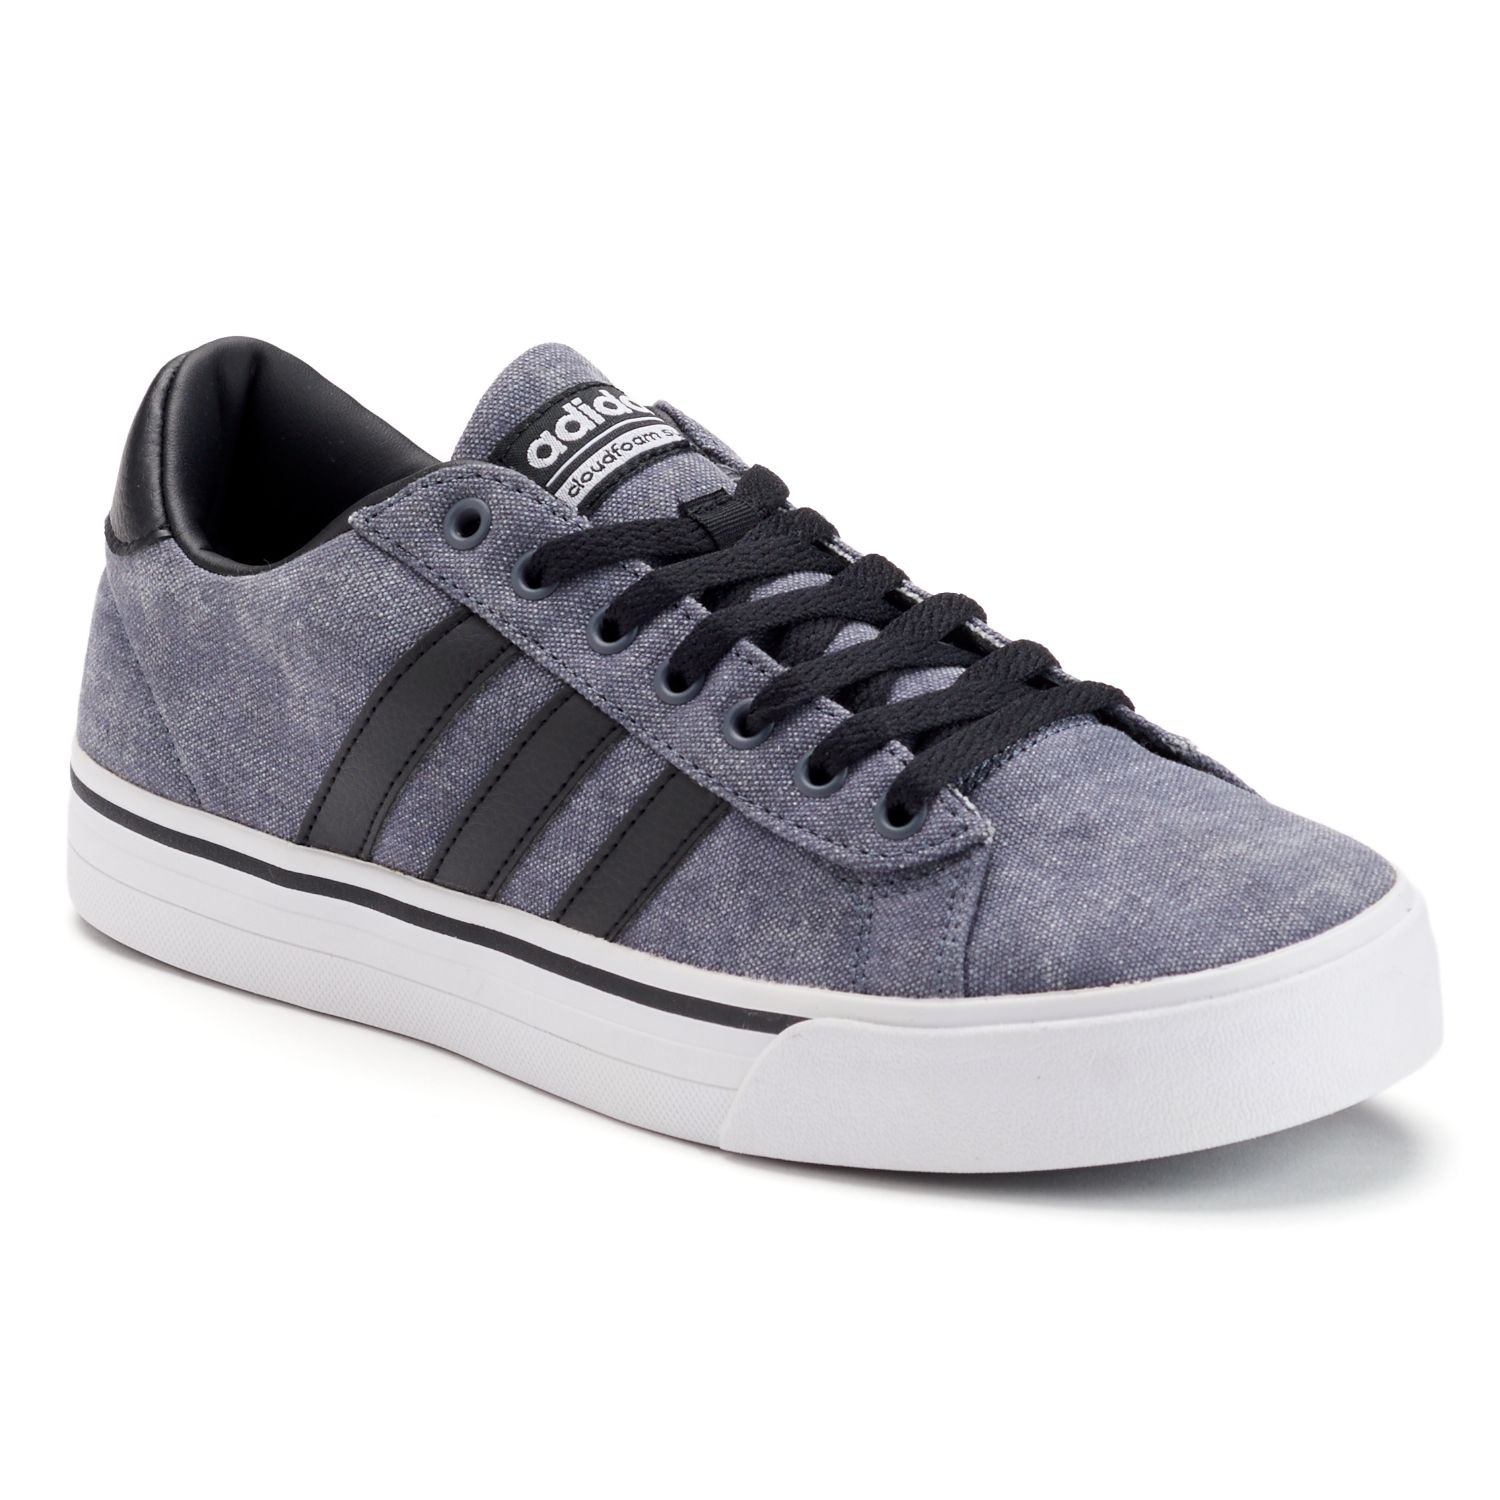 adidas NEO Cloudfoam Super Daily Men\u0027s Shoes. Gray Black. sale